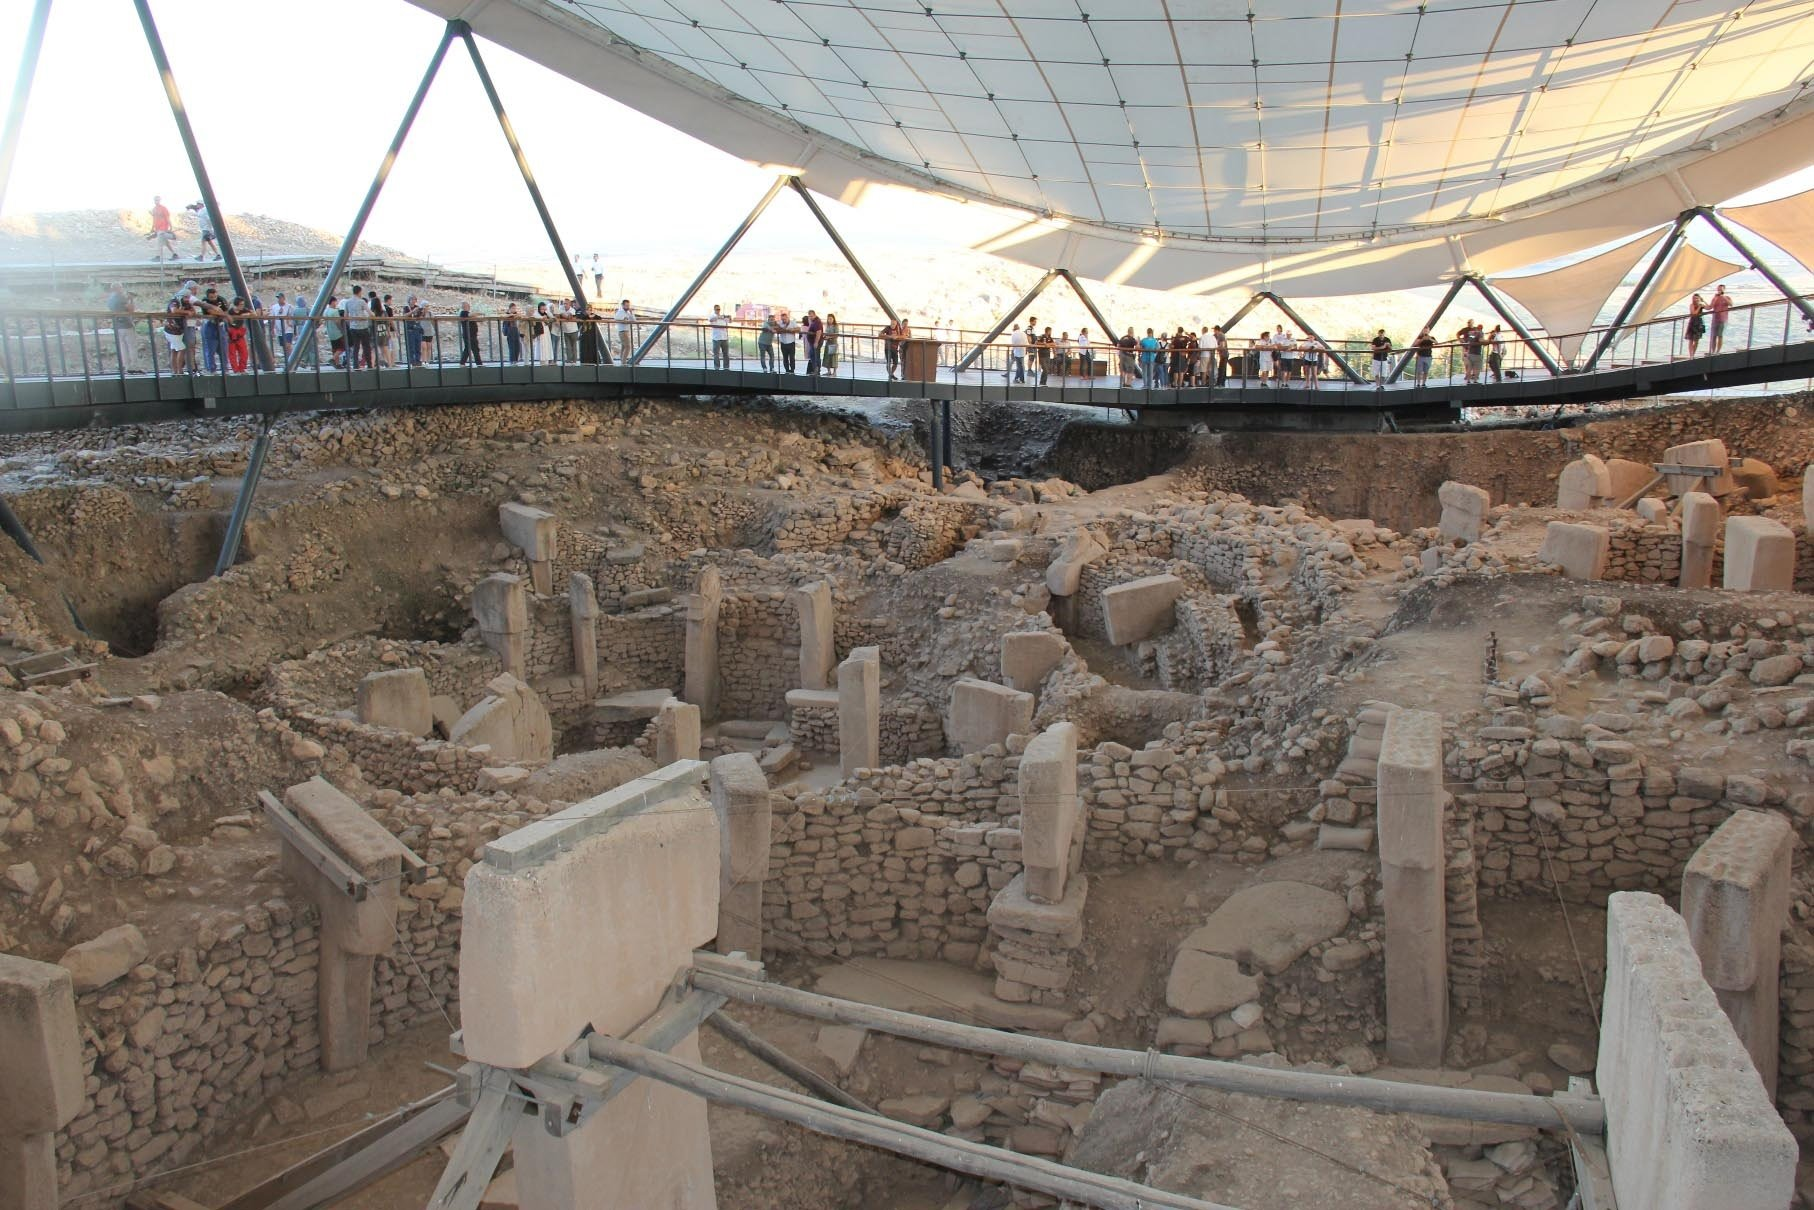 Göbeklitepe is an ancient temple more than 12,000 years old. (DHA Photo)